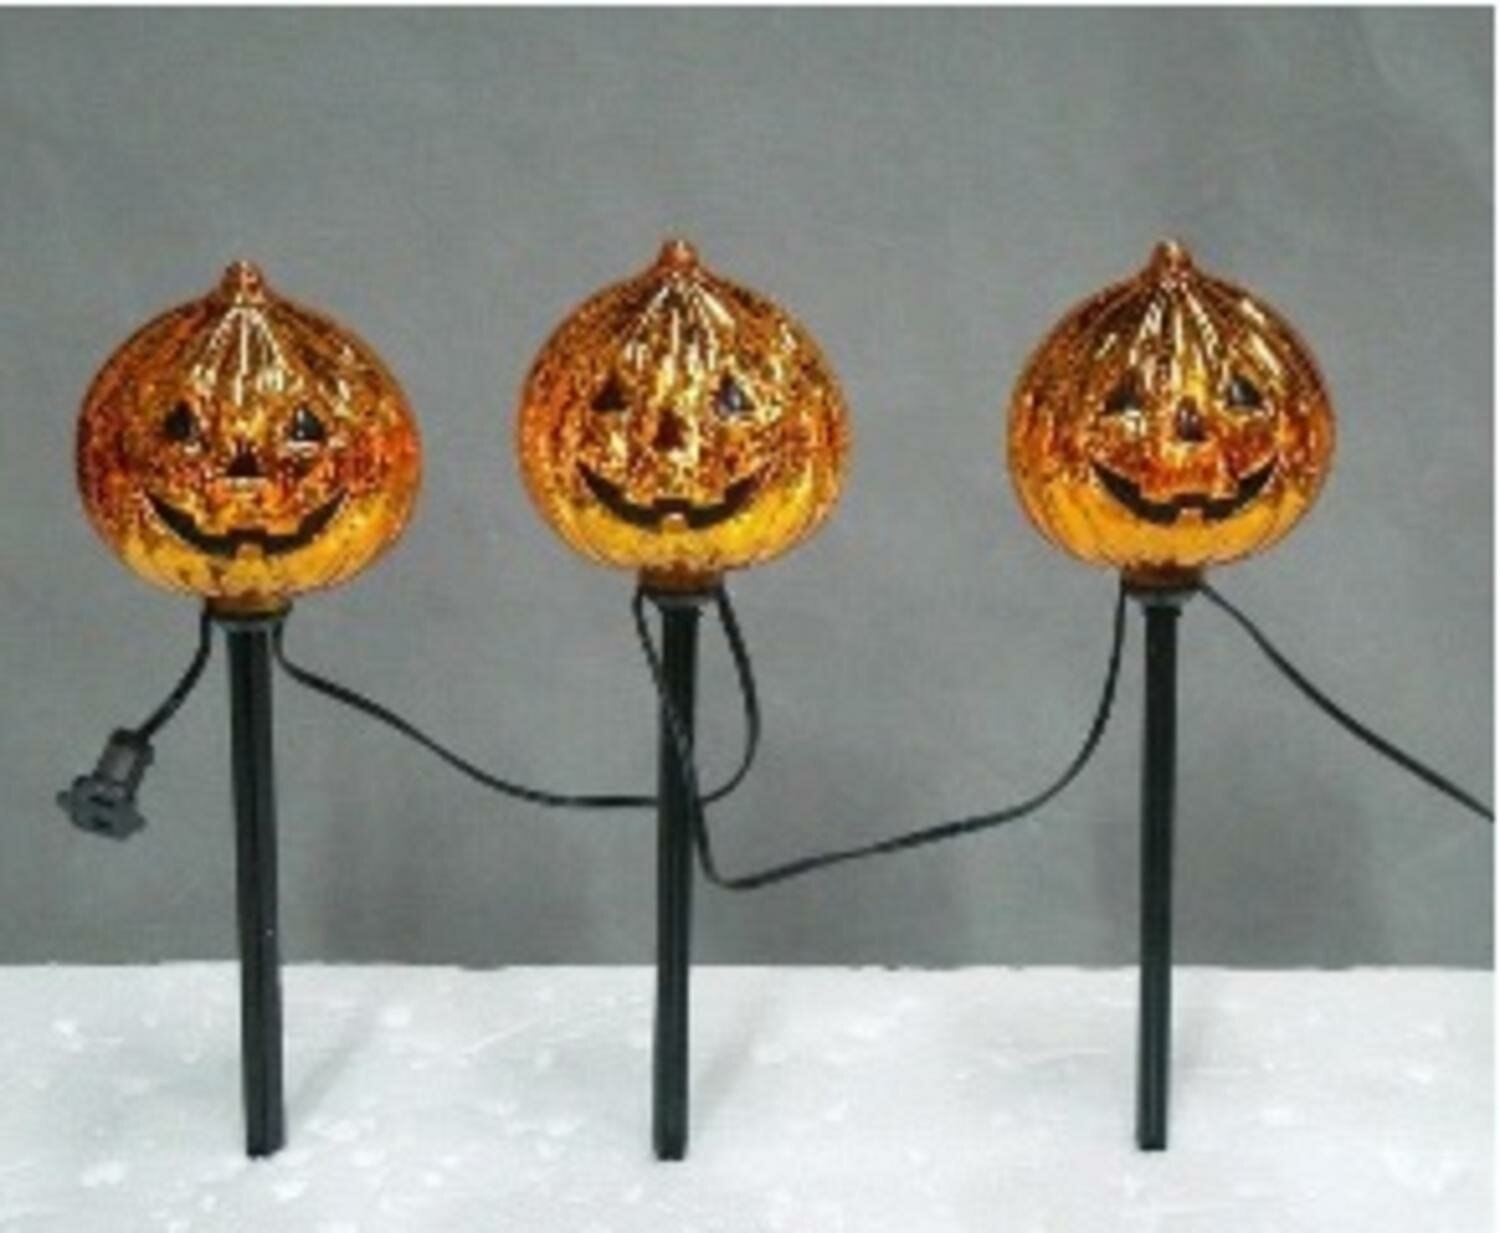 The Holiday Aisle Pumpkin Statue with LED Eerie Night Scene Lighted Display